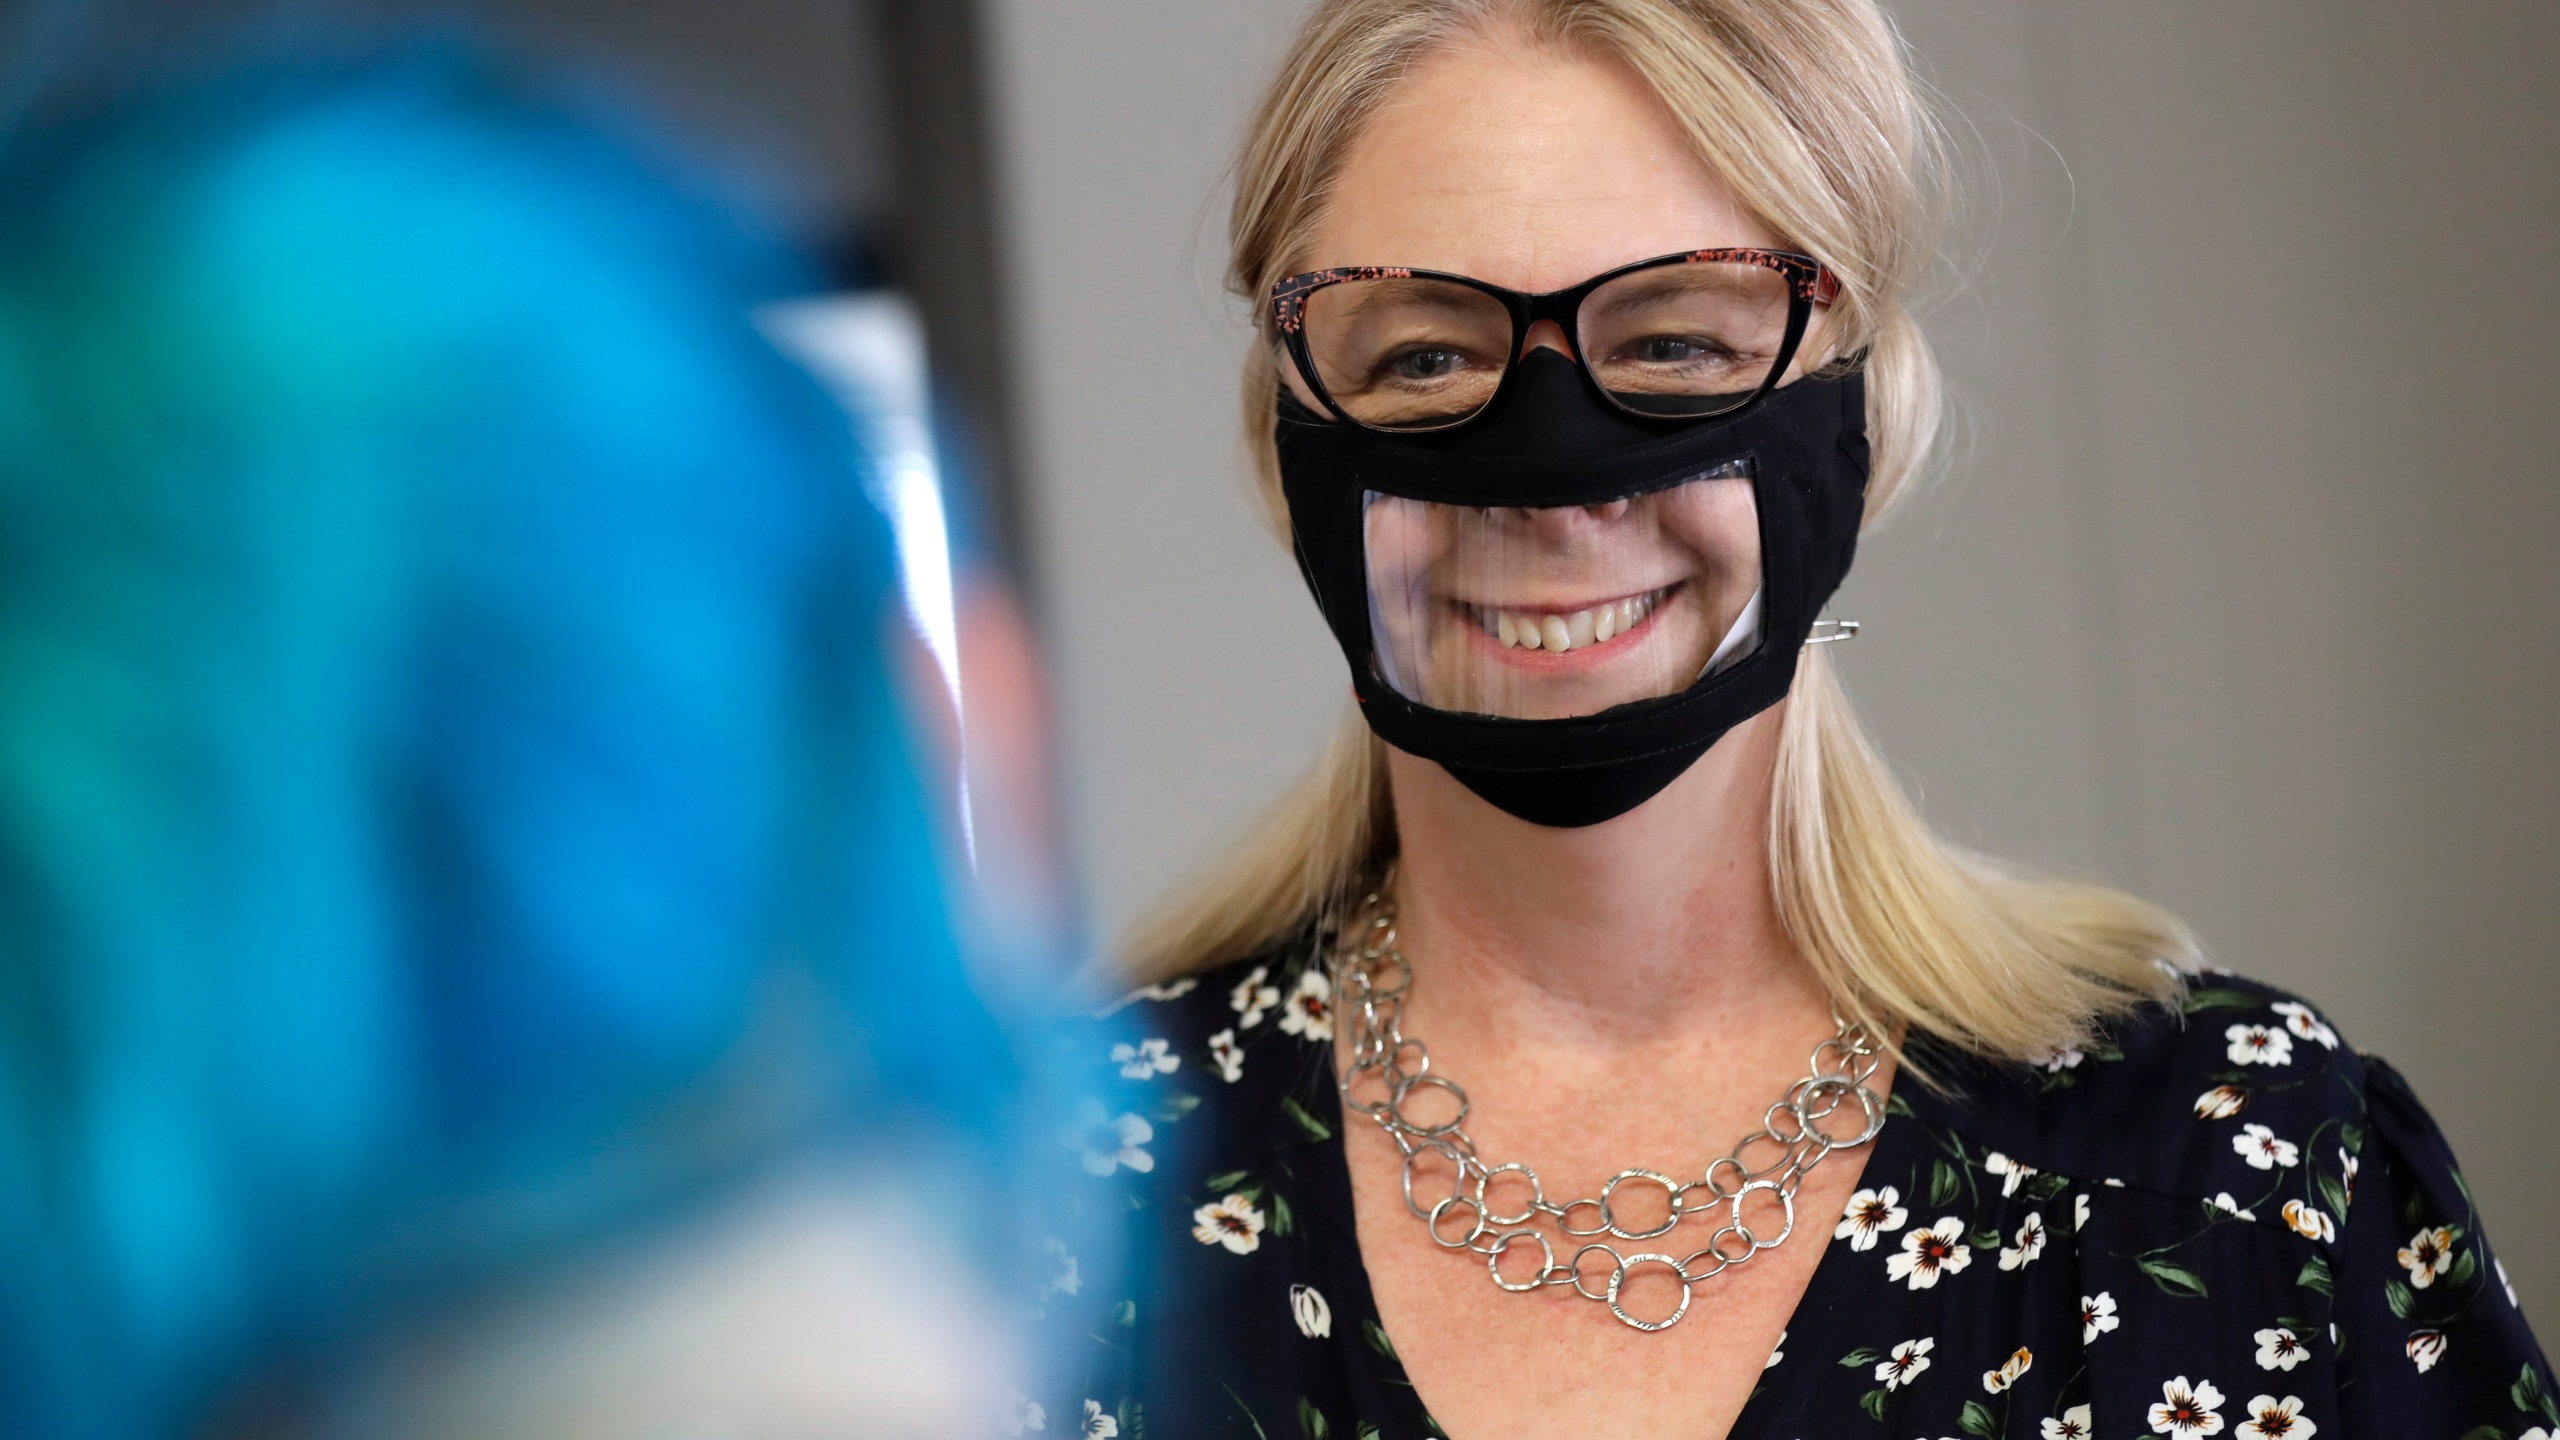 Face Masks With Windows Mean More Than Smiles To Deaf People Kx News